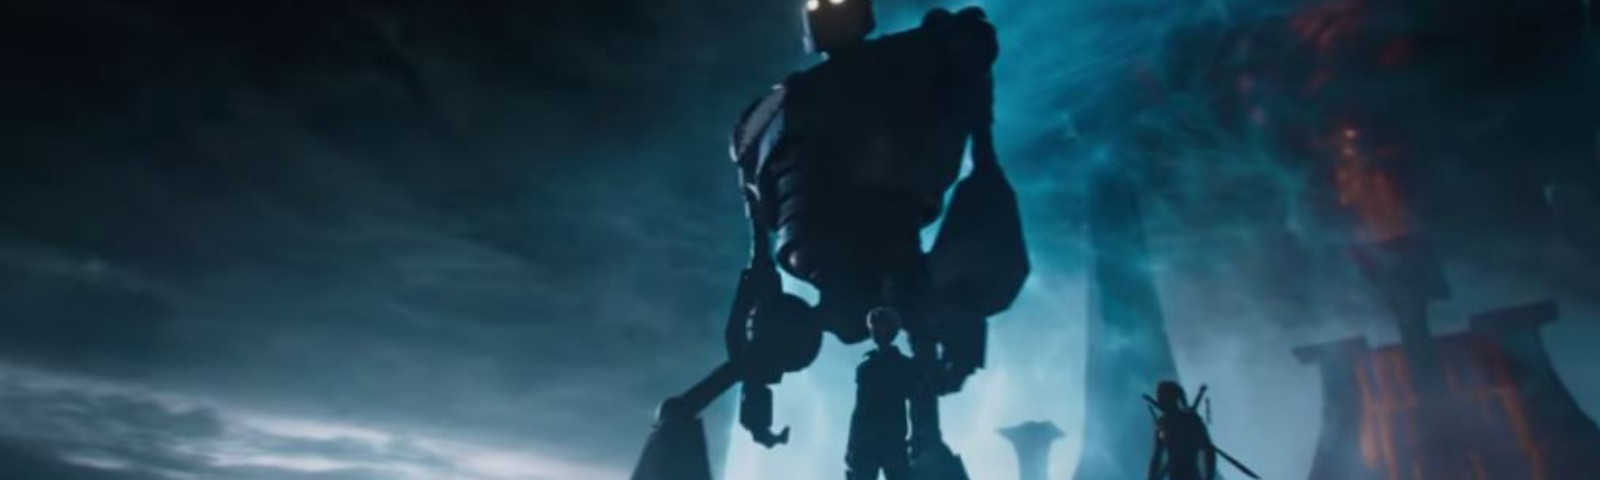 ab00b2d0f330 Catch the Myth  Decoding the Ready Player One trailer